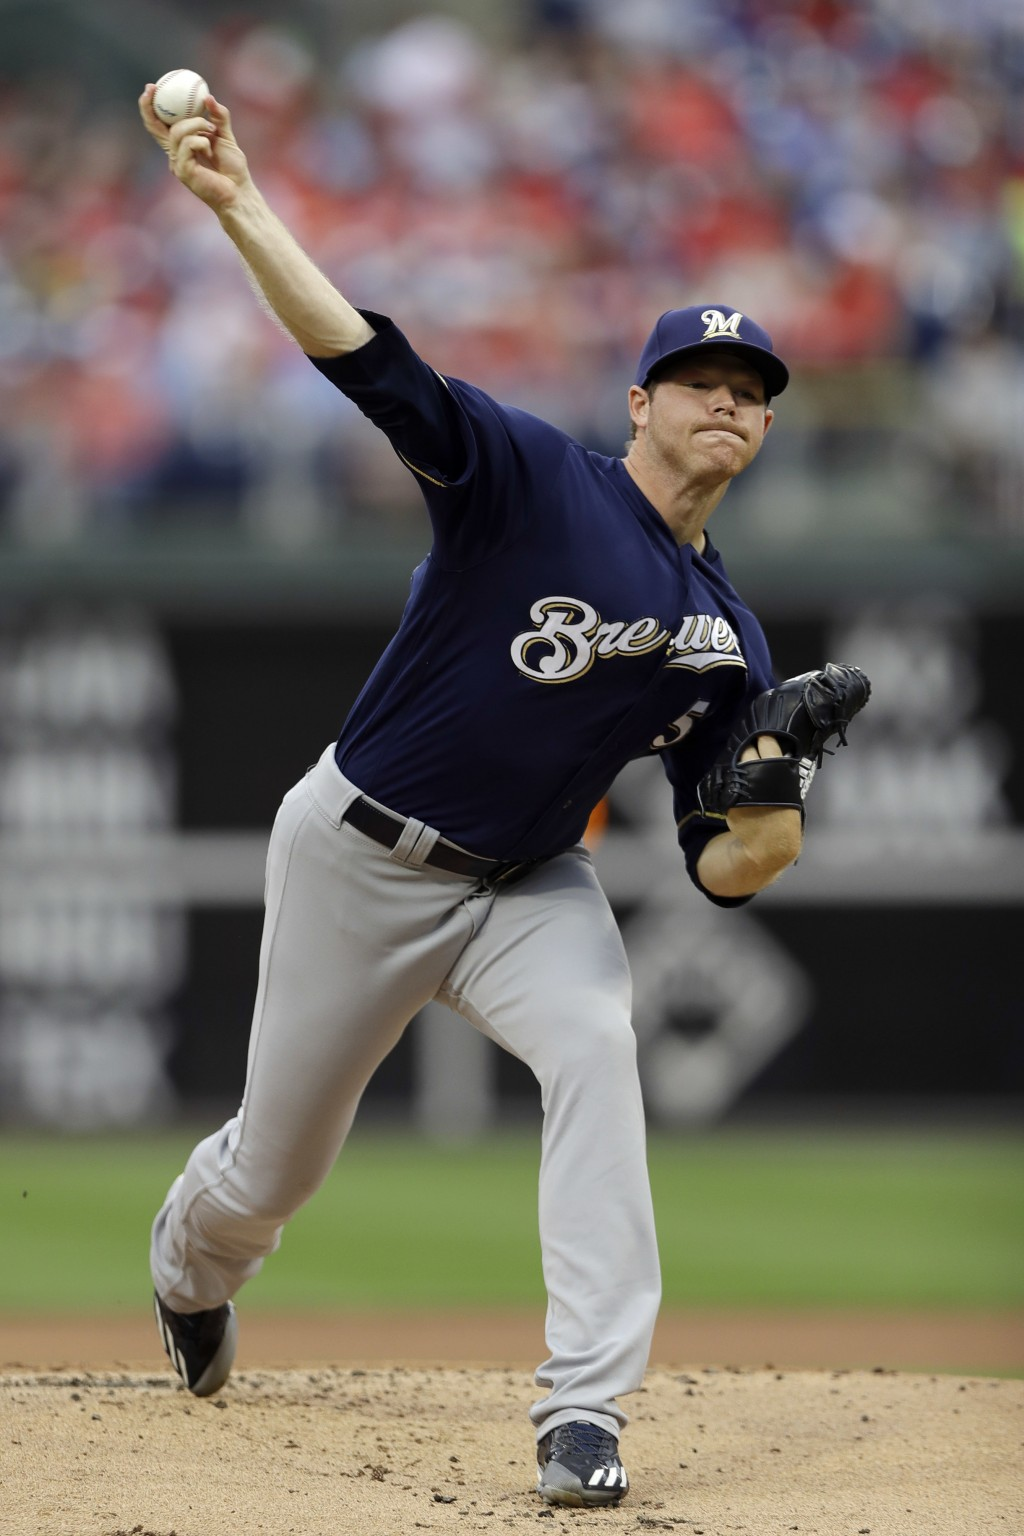 Milwaukee Brewers' Brandon Woodruff pitches during the first inning of a baseball game against the Philadelphia Phillies, Sunday, June 10, 2018, in Ph...